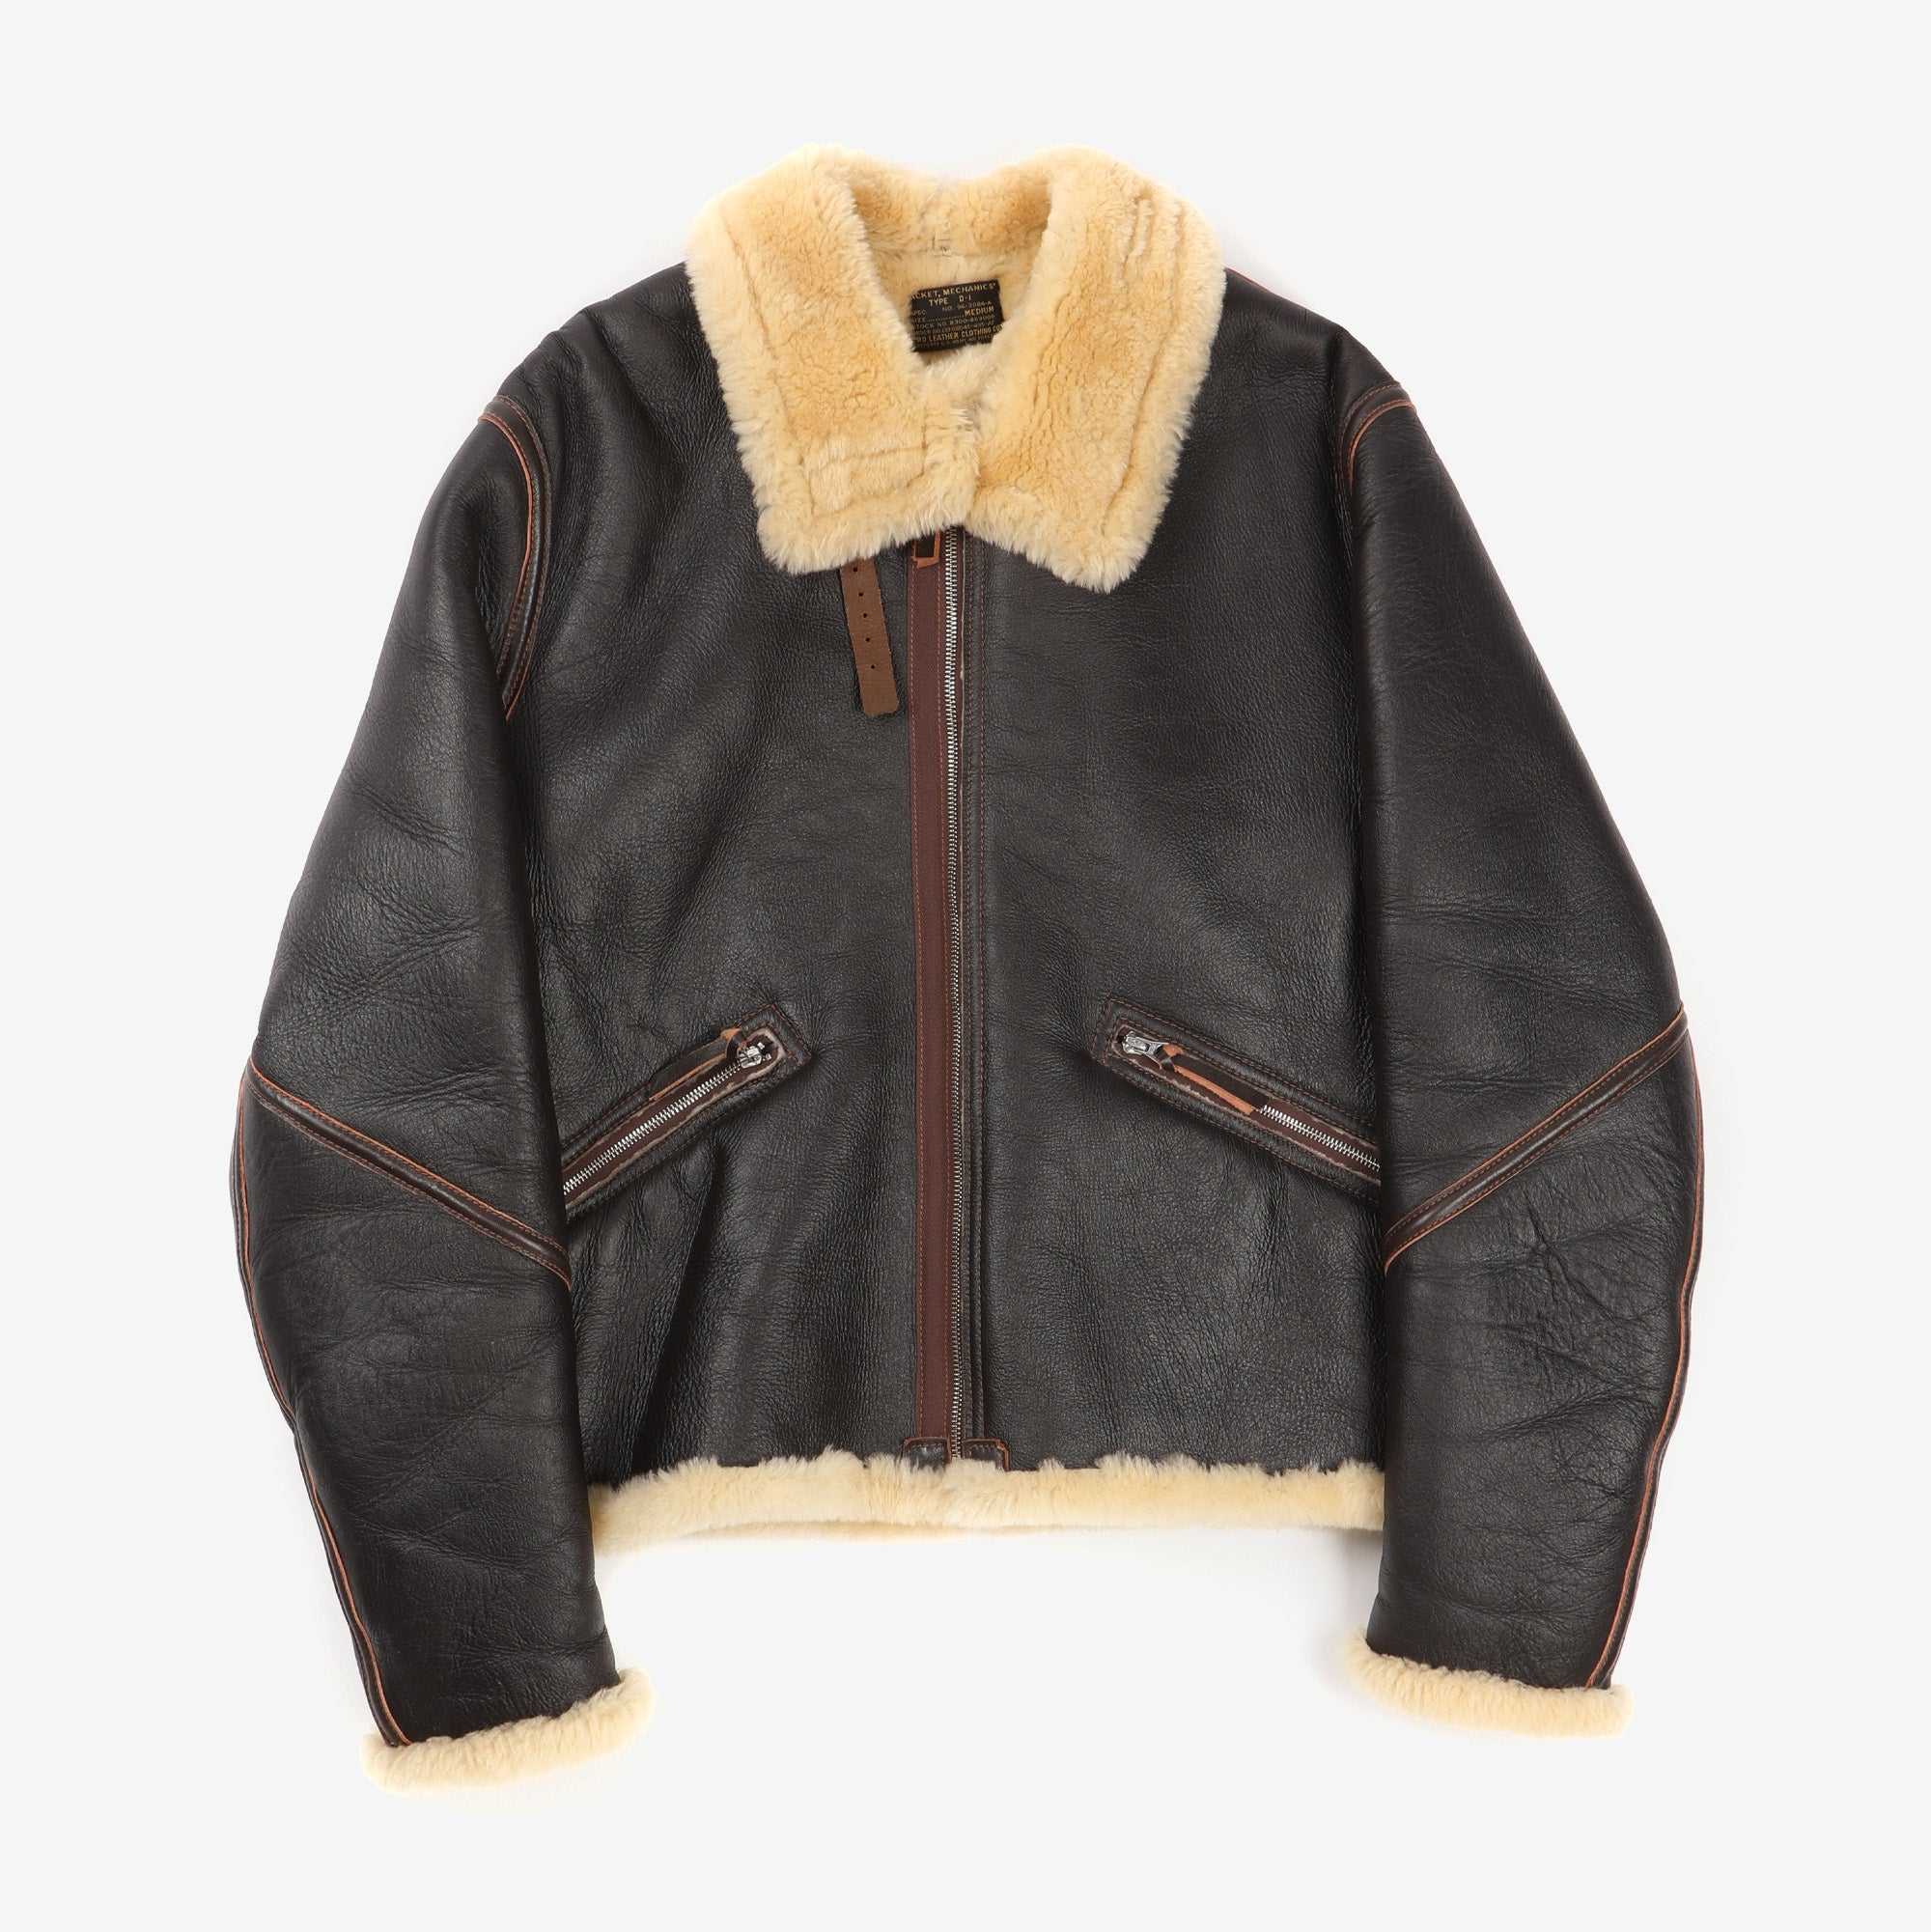 Type D-1 Sheepskin Mechanics Jacket